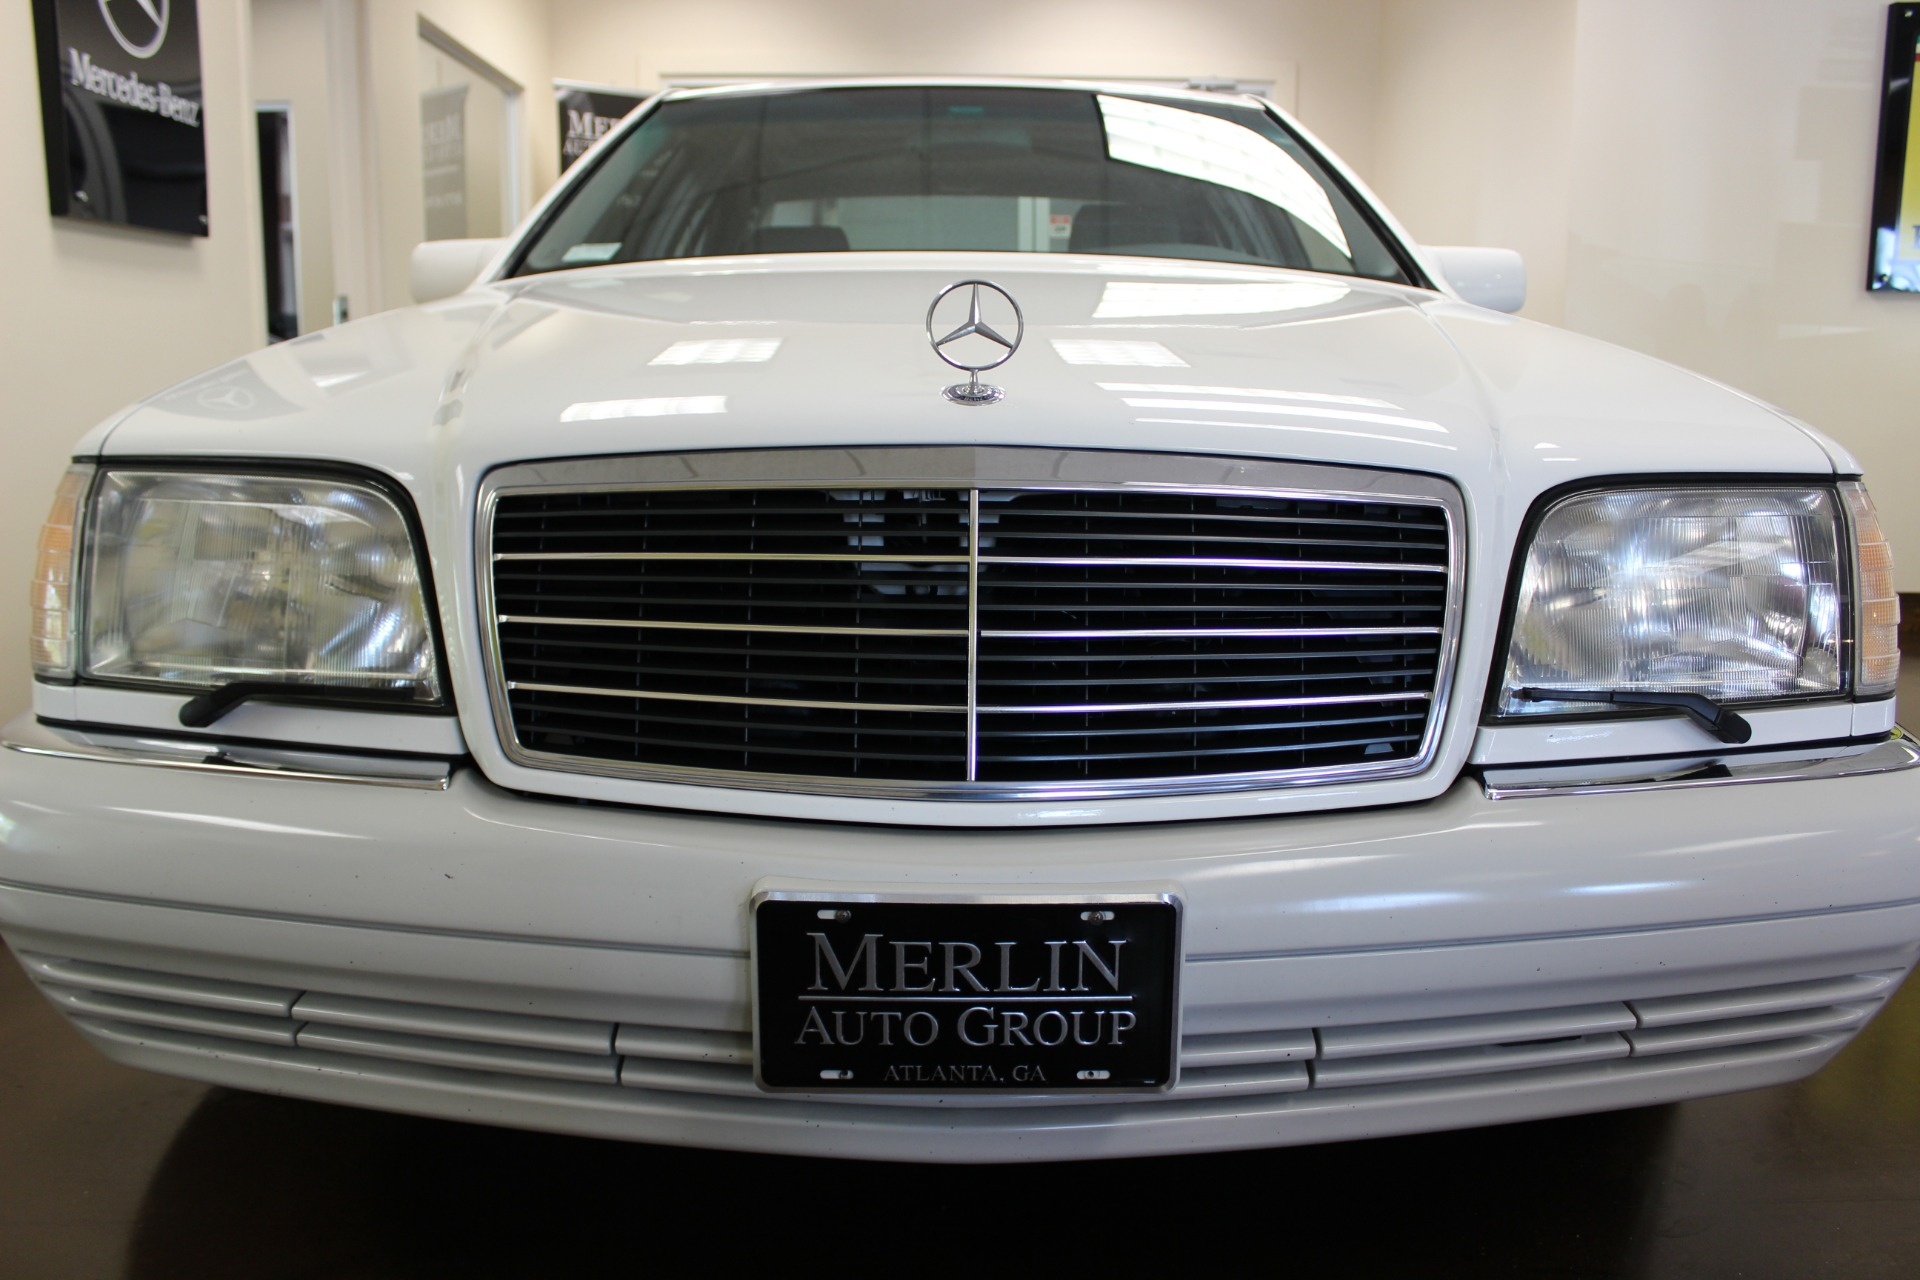 Used 1995 mercedes benz s class white sedan v8 a for Mercedes benz s550 for sale in atlanta ga